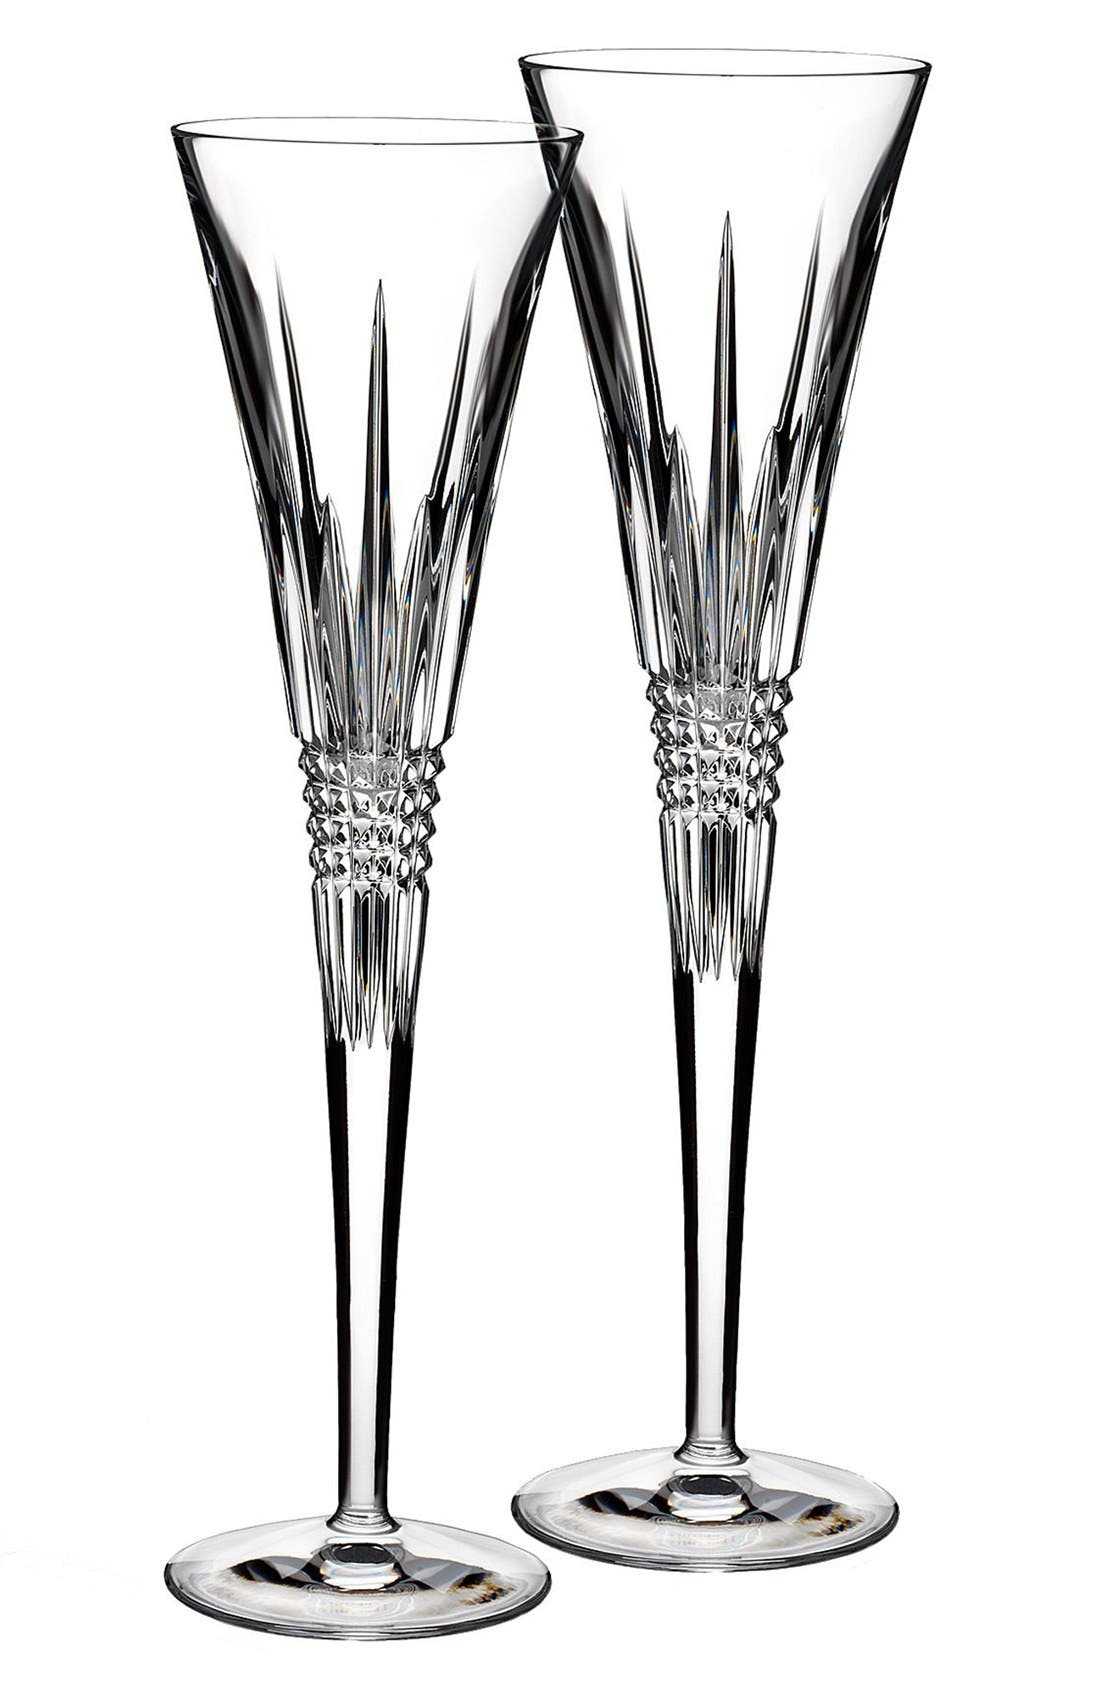 Alternate Image 1 Selected - Waterford 'Lismore Diamond' Lead Crystal Champagne Flutes (Set of 2)